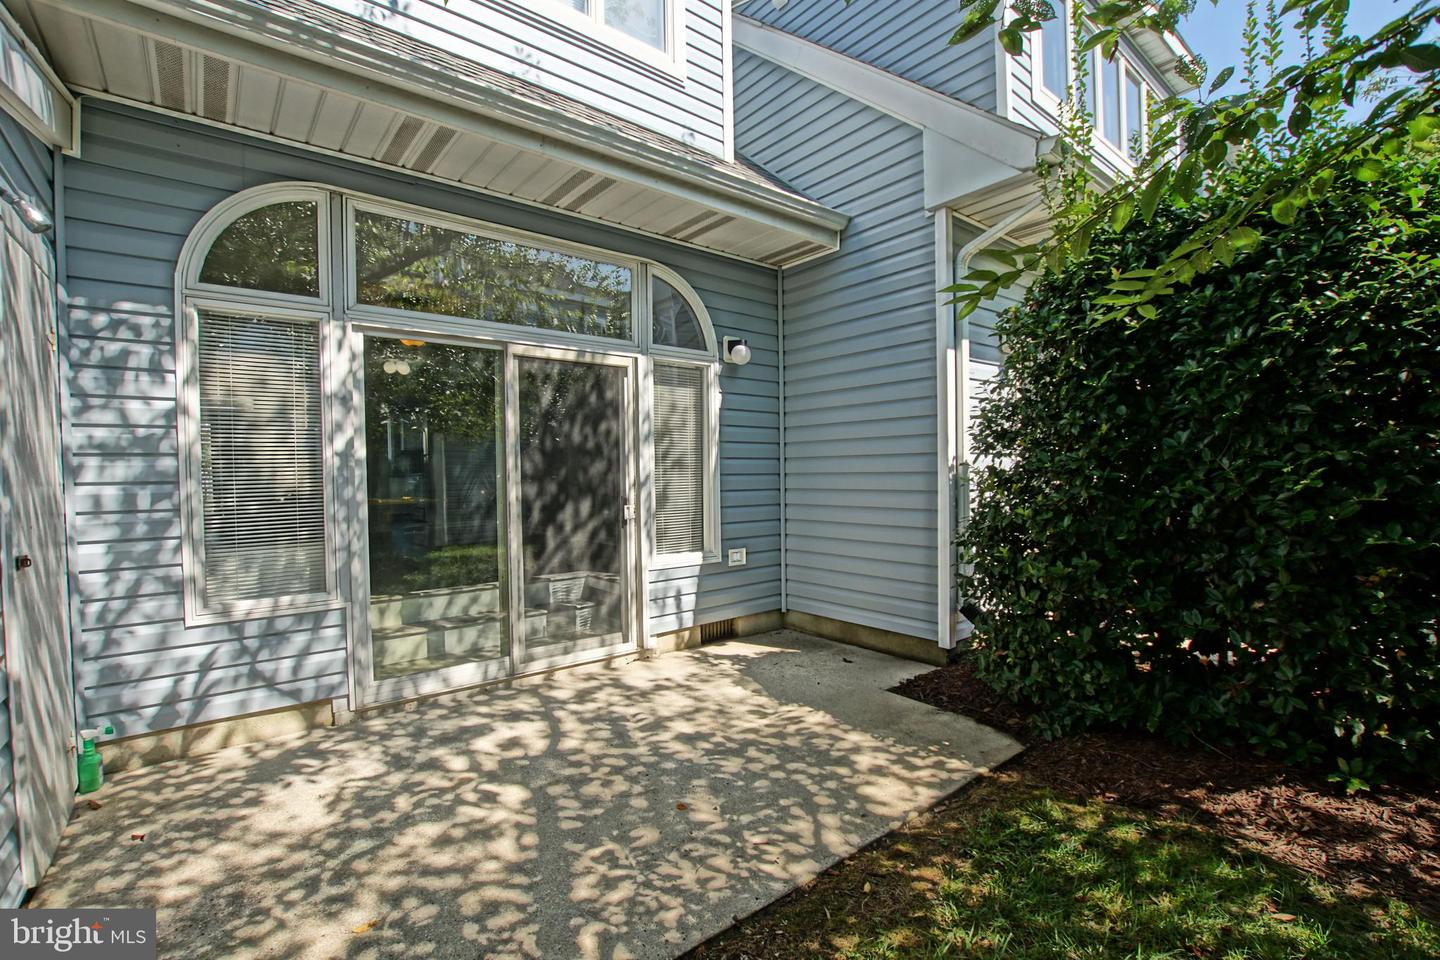 DESU145224-301925486573-2019-09-10-10-53-40 23 Henlopen Gdns | Lewes, DE Real Estate For Sale | MLS# Desu145224  - Lee Ann Group